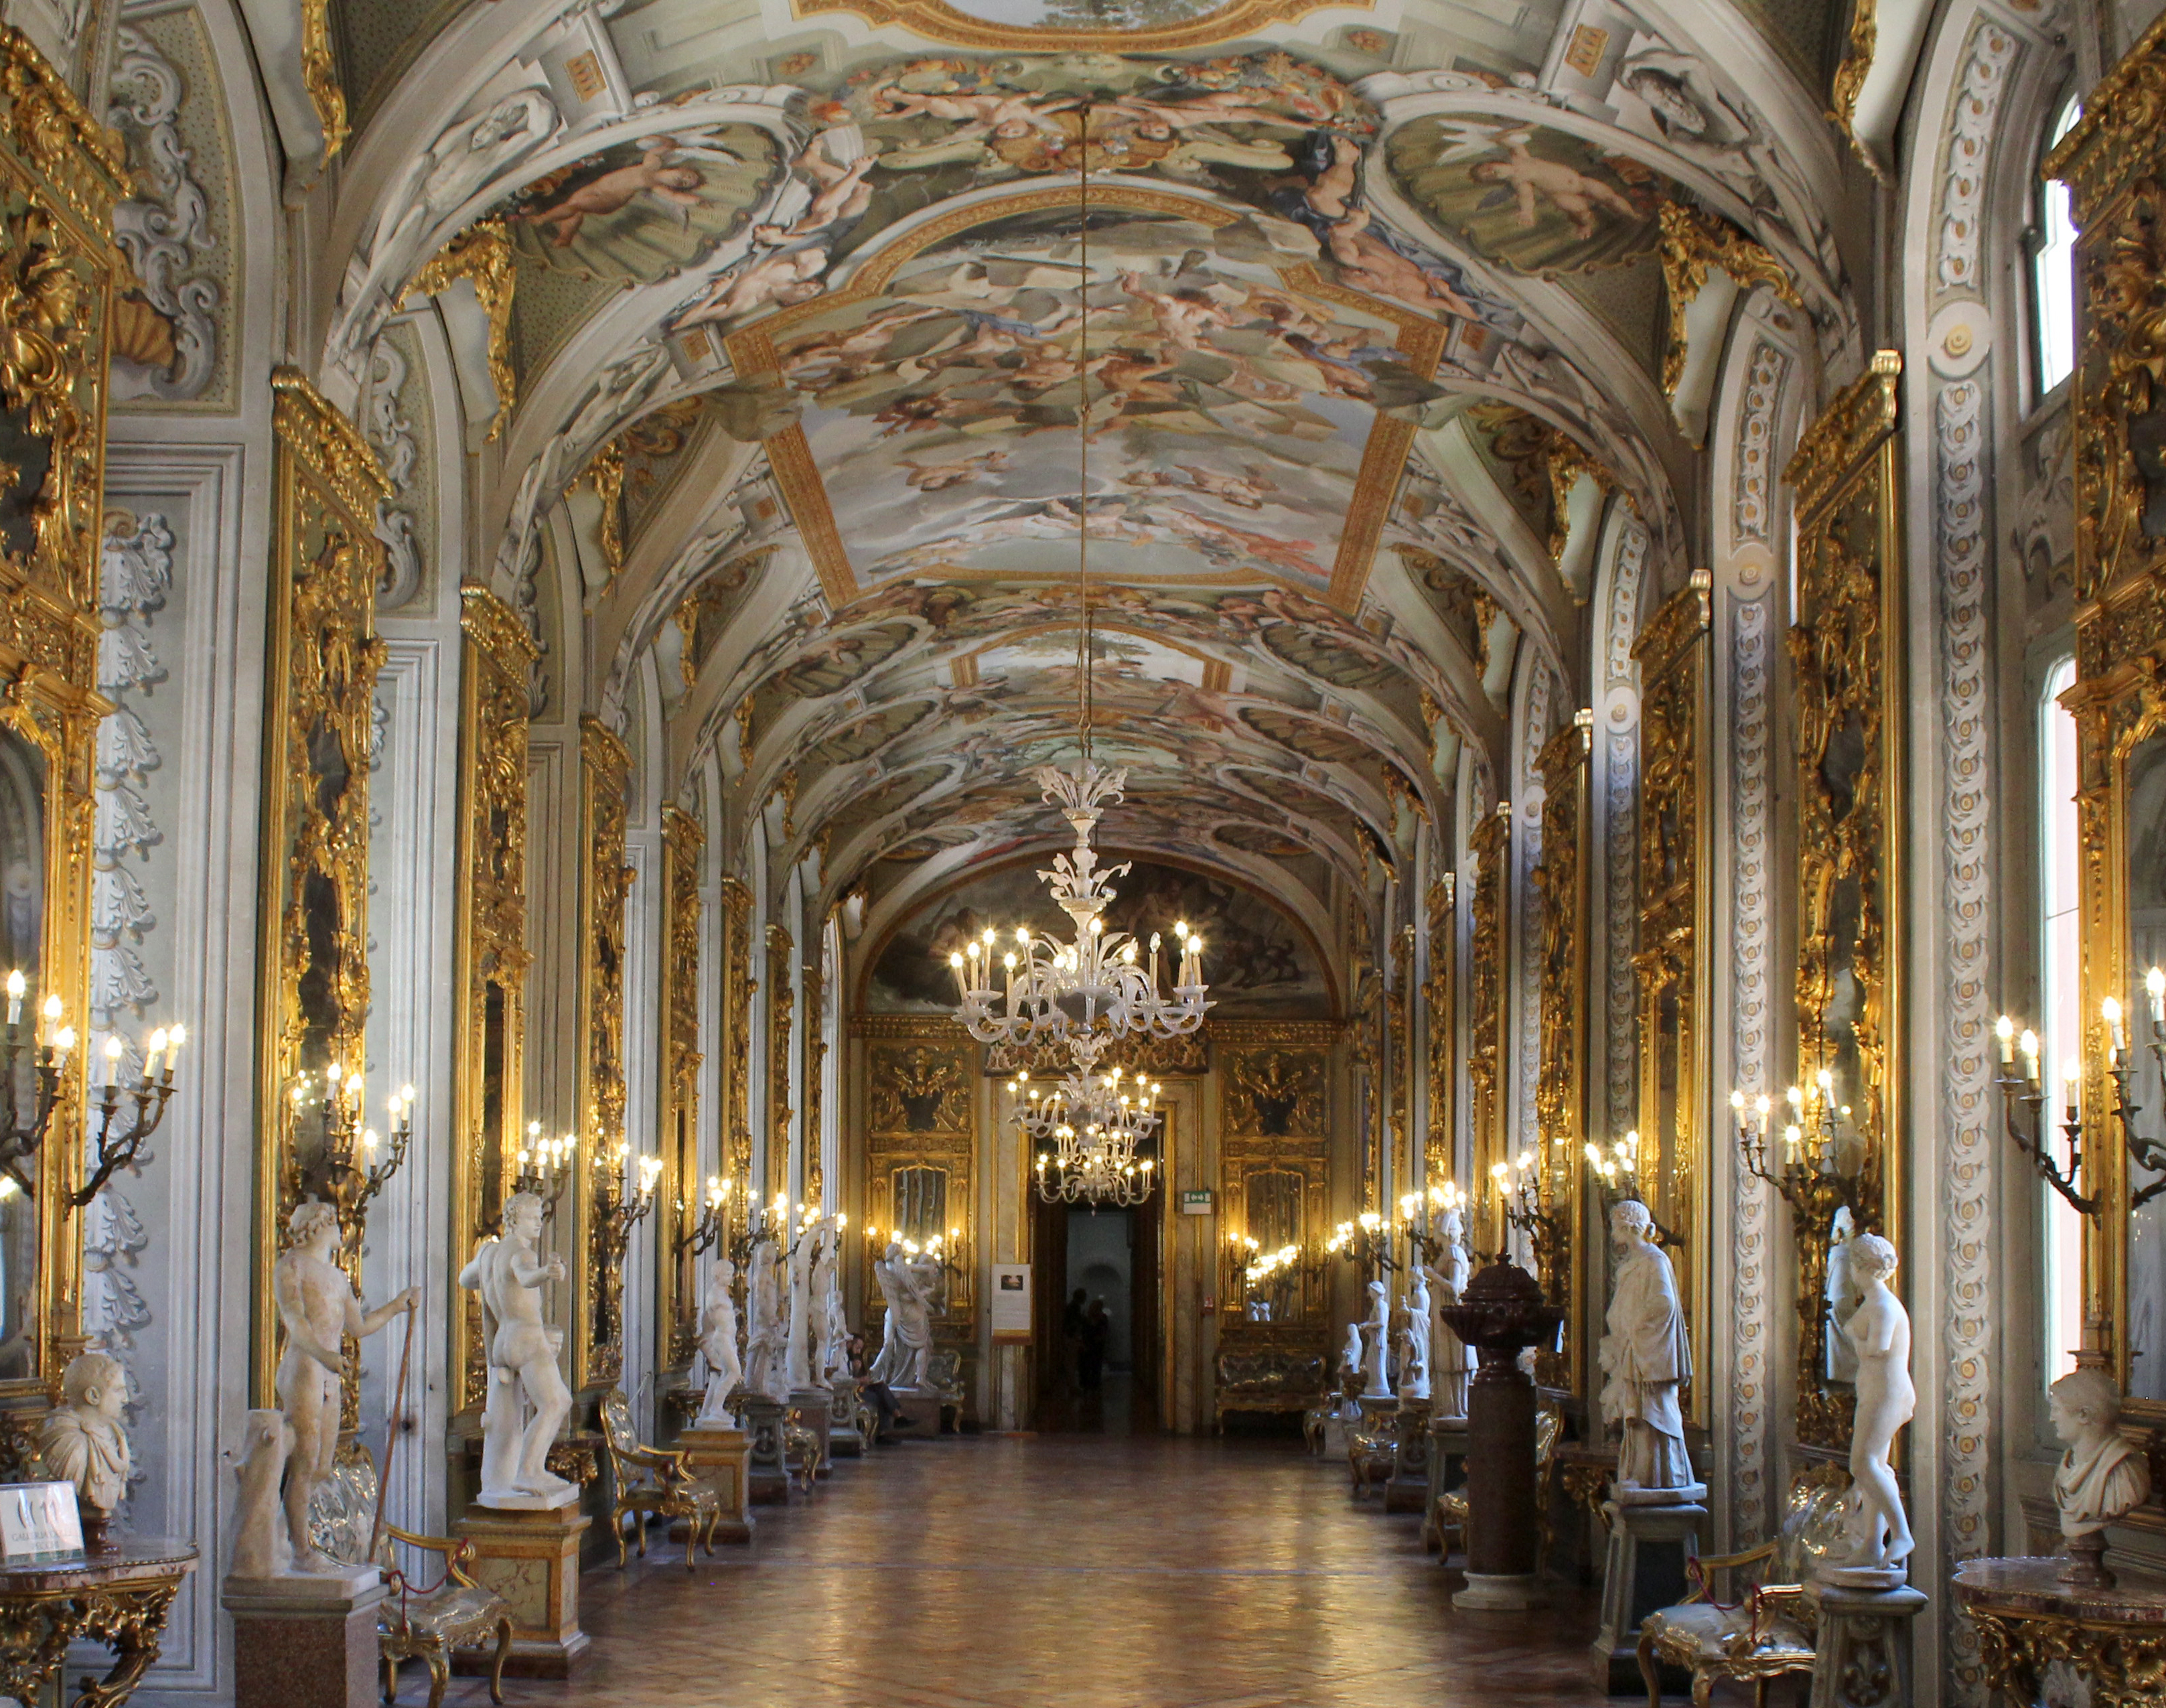 The Doria Pamphilj Museum: Hall of Statues & Mirrors (Photo: Henri Craemer)